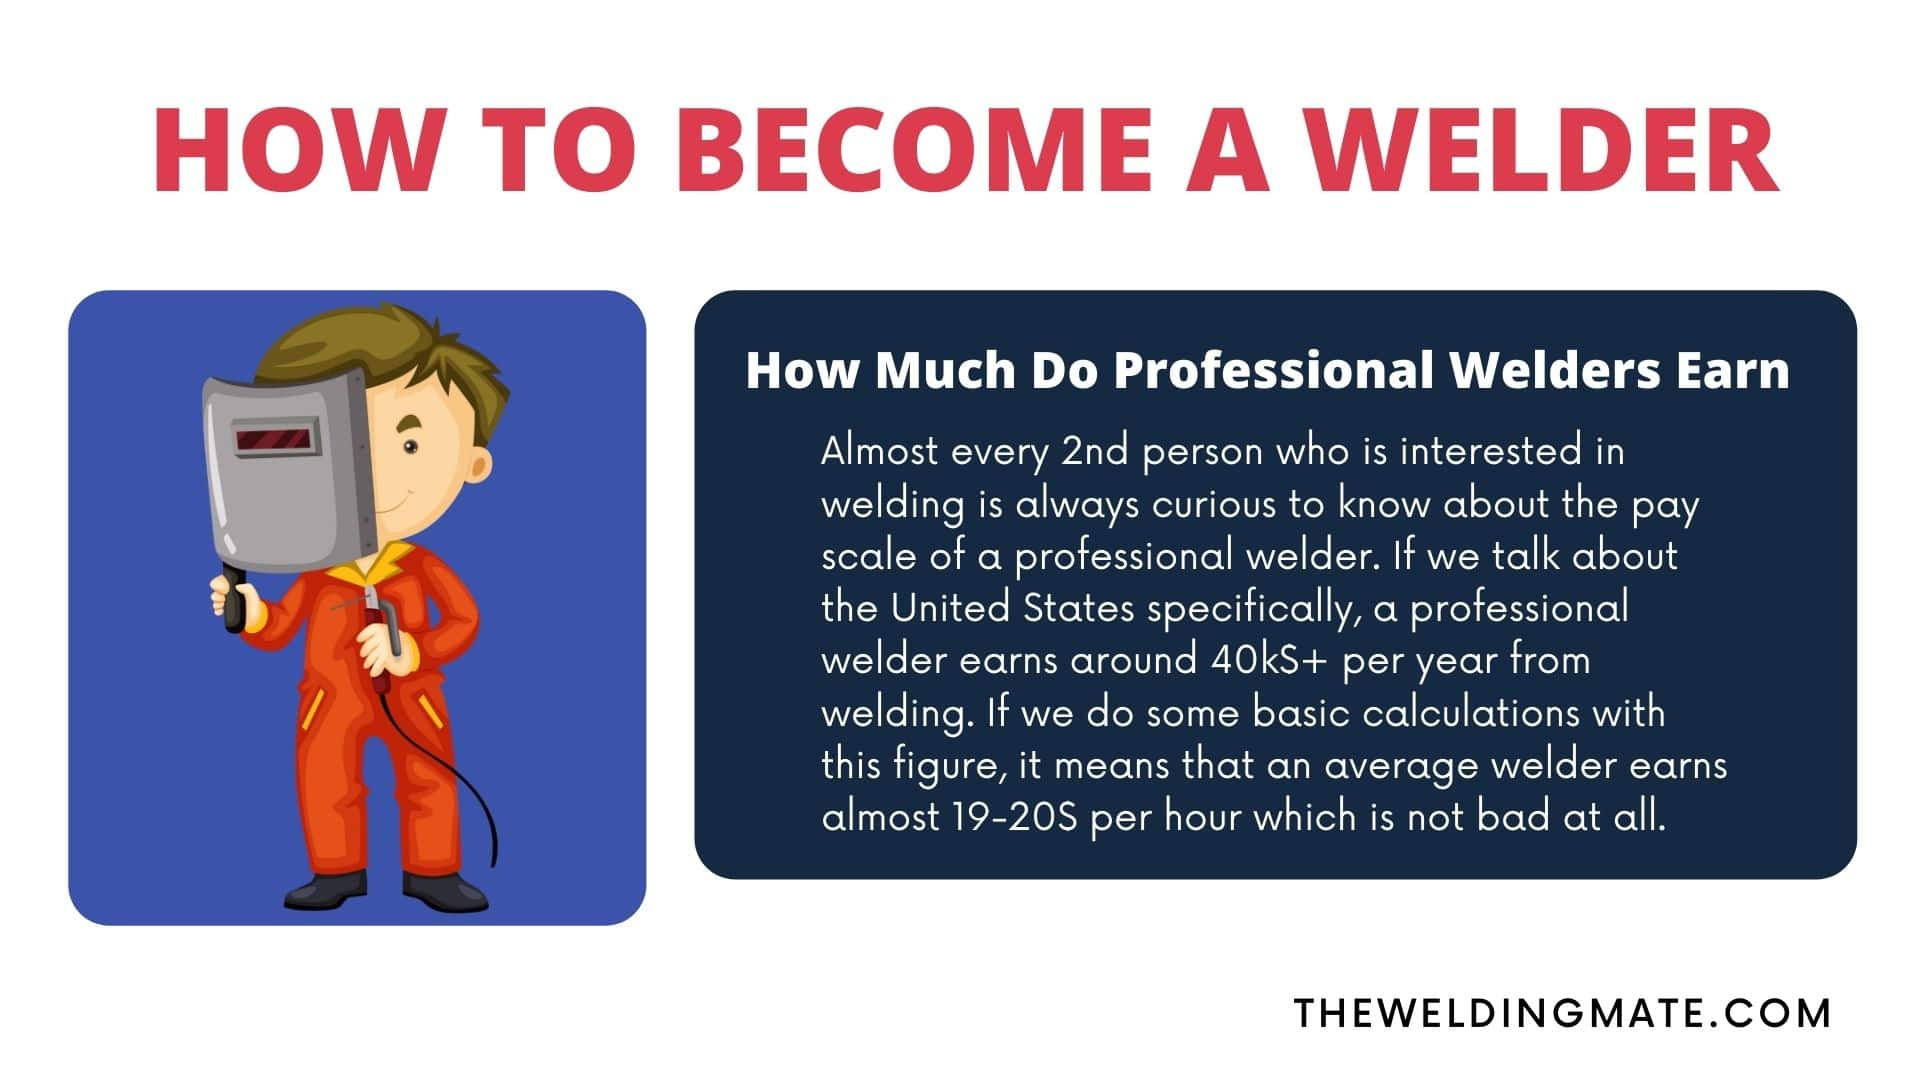 How to Become a Welder1